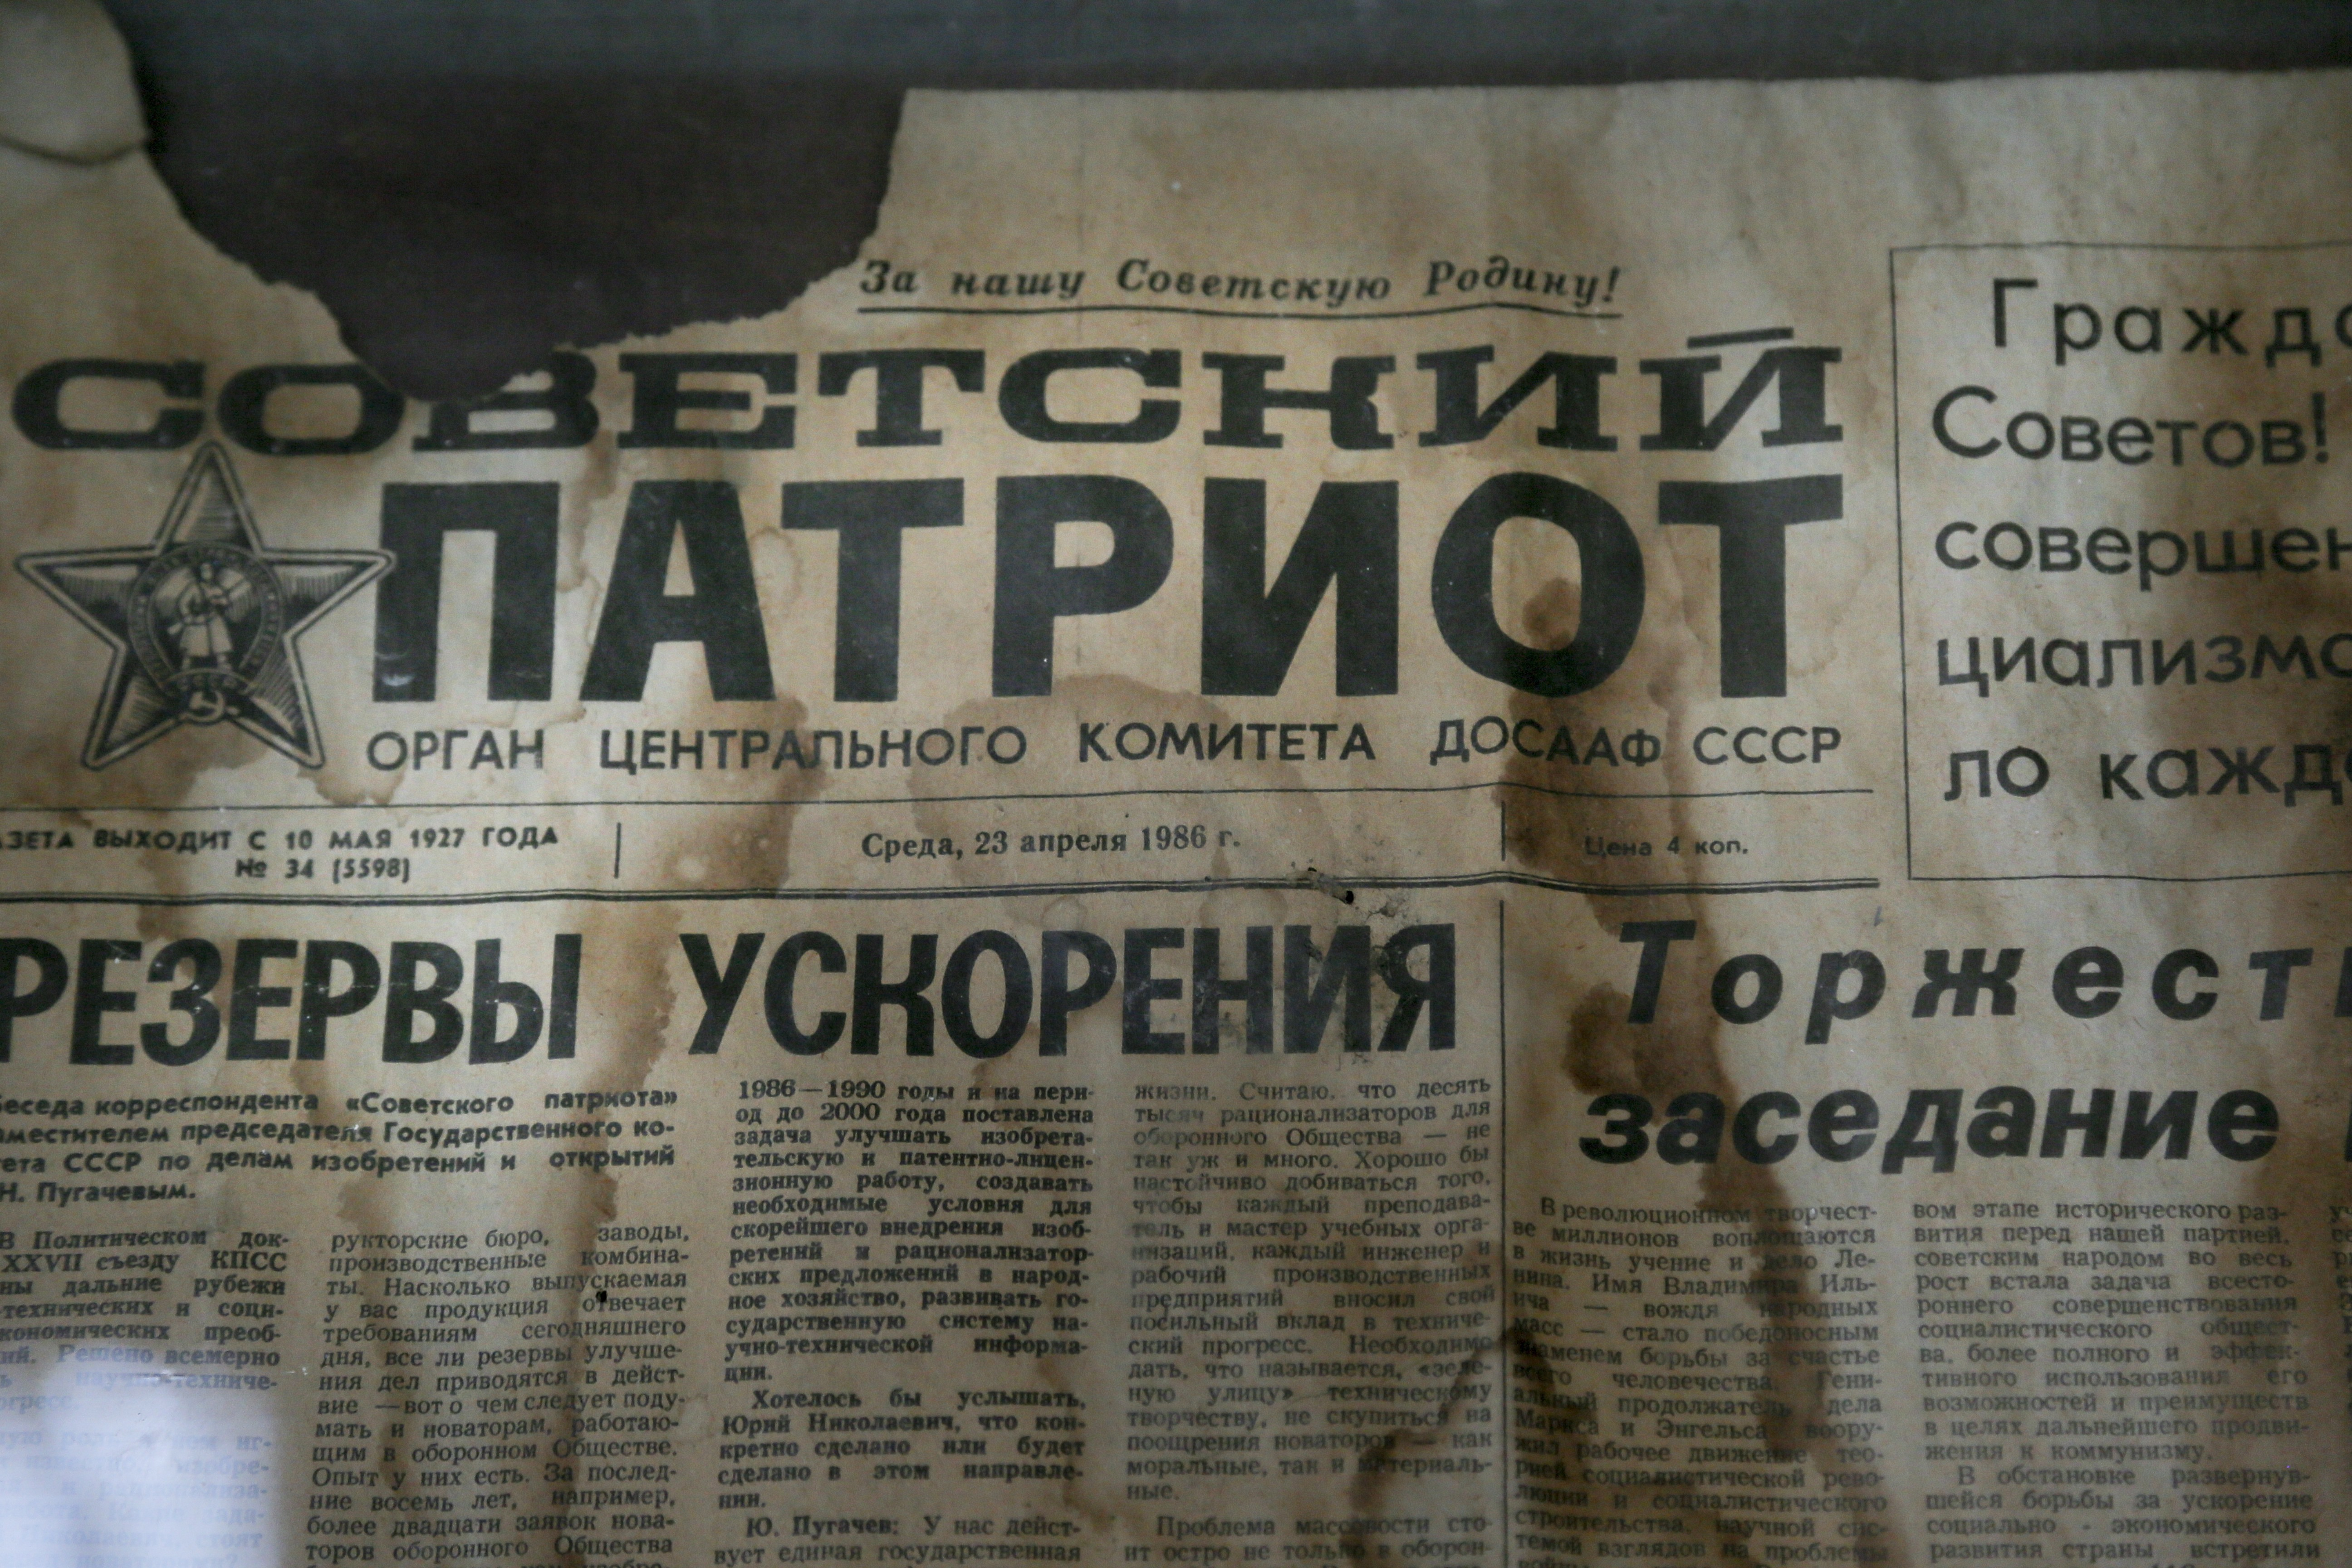 Chernobyl Aftermath-2 In this photo taken Wednesday, April 5, 2017, an edition of the newspaper Sovetsky Patriot, dated three days before the nuclear explosion, is attached to a bulletin board in a house of culture in the deserted town of Pripyat, some 3 kilometers (1.86 miles) from the Chernobyl nuclear power plant Ukraine. Once home to some 50,000 people whose lives were connected to the Chernobyl nuclear power plant, Pripyat was hastily evacuated one day after a reactor at the plant 3 kilometers (2 miles away) exploded on April 26, 1986. The explosion and the subsequent fire spewed a radioactive plume over much of northern Europe. (AP Photo/Efrem Lukatsky)